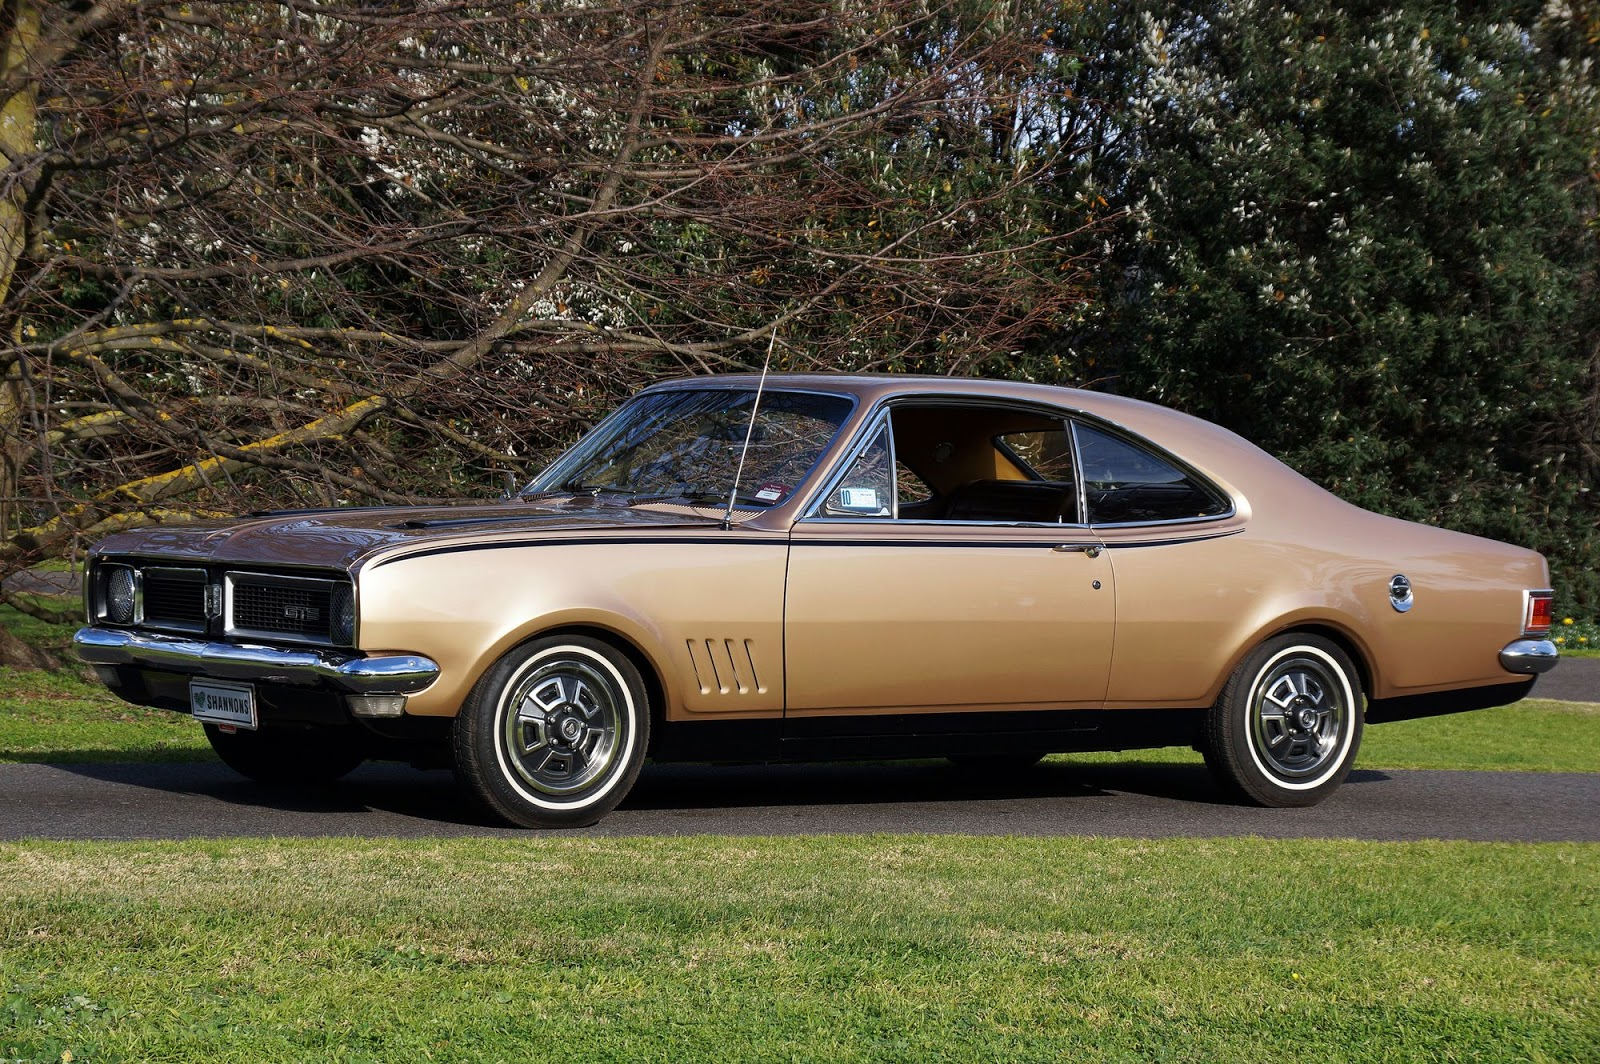 Desirable Classic Ford Falcon And Holden Models Auctioned